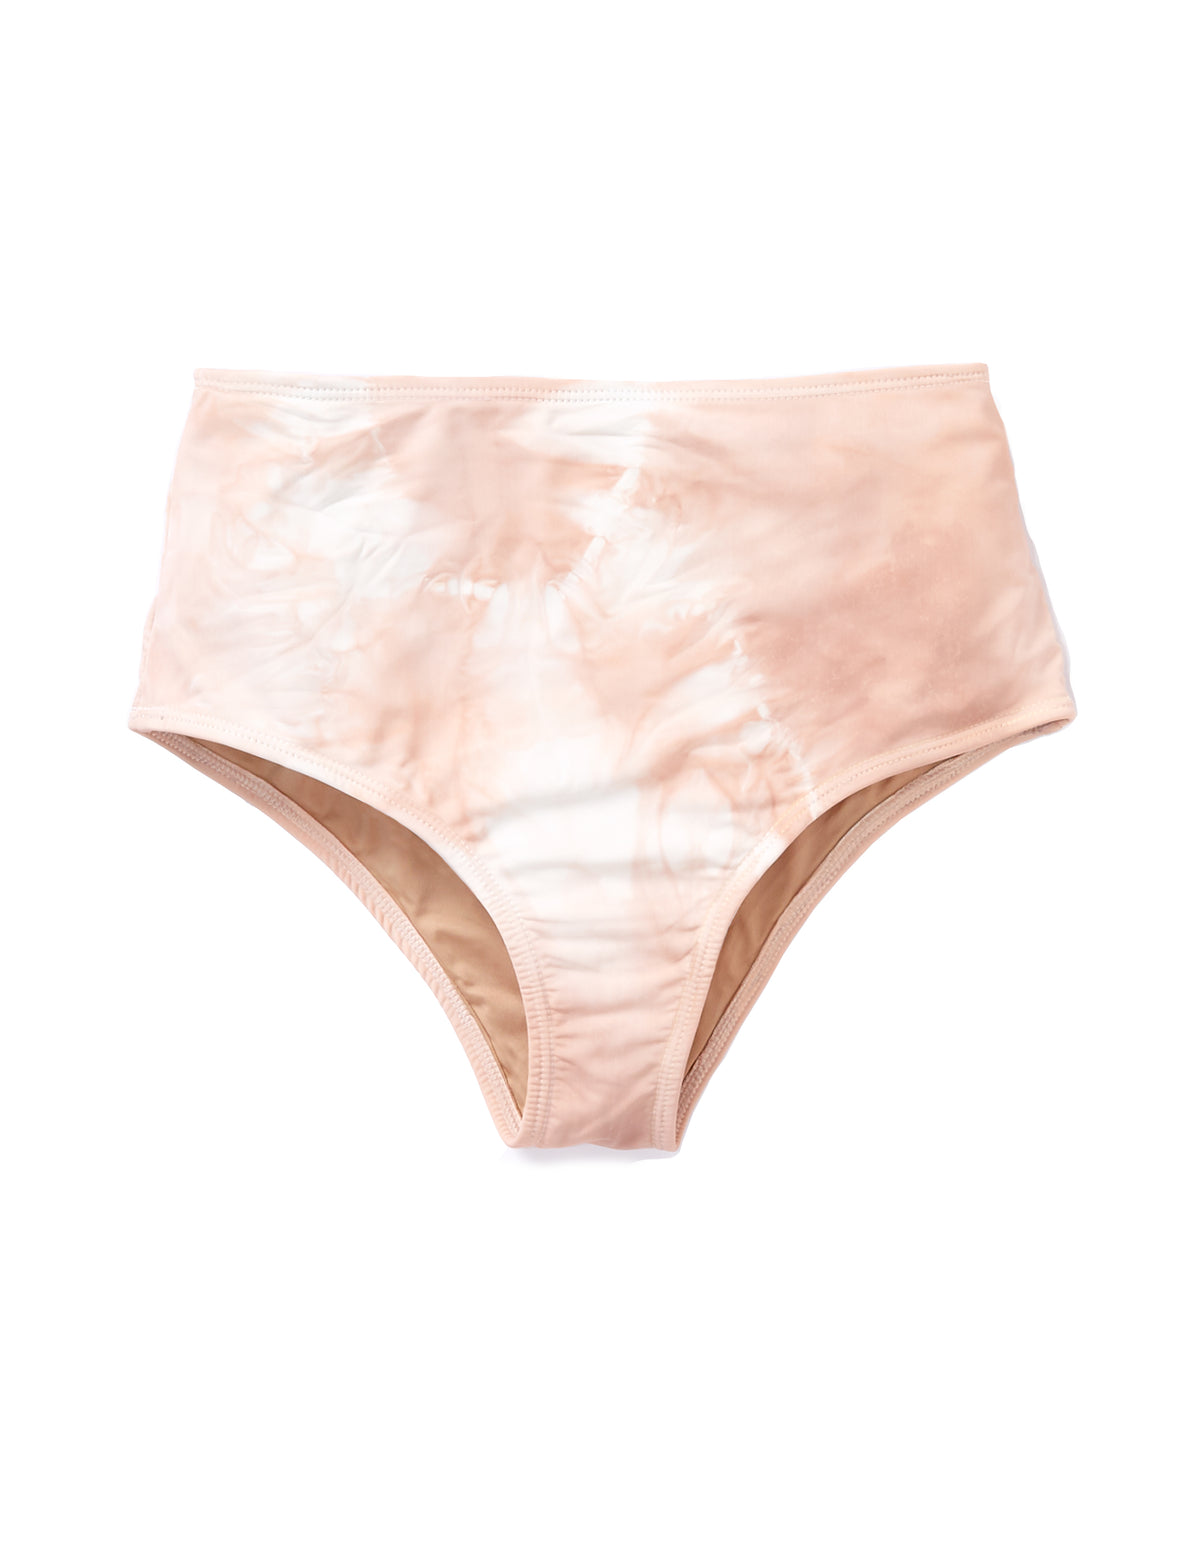 High Waist Bottoms Swimsuit in Blush - riverside tool & dye